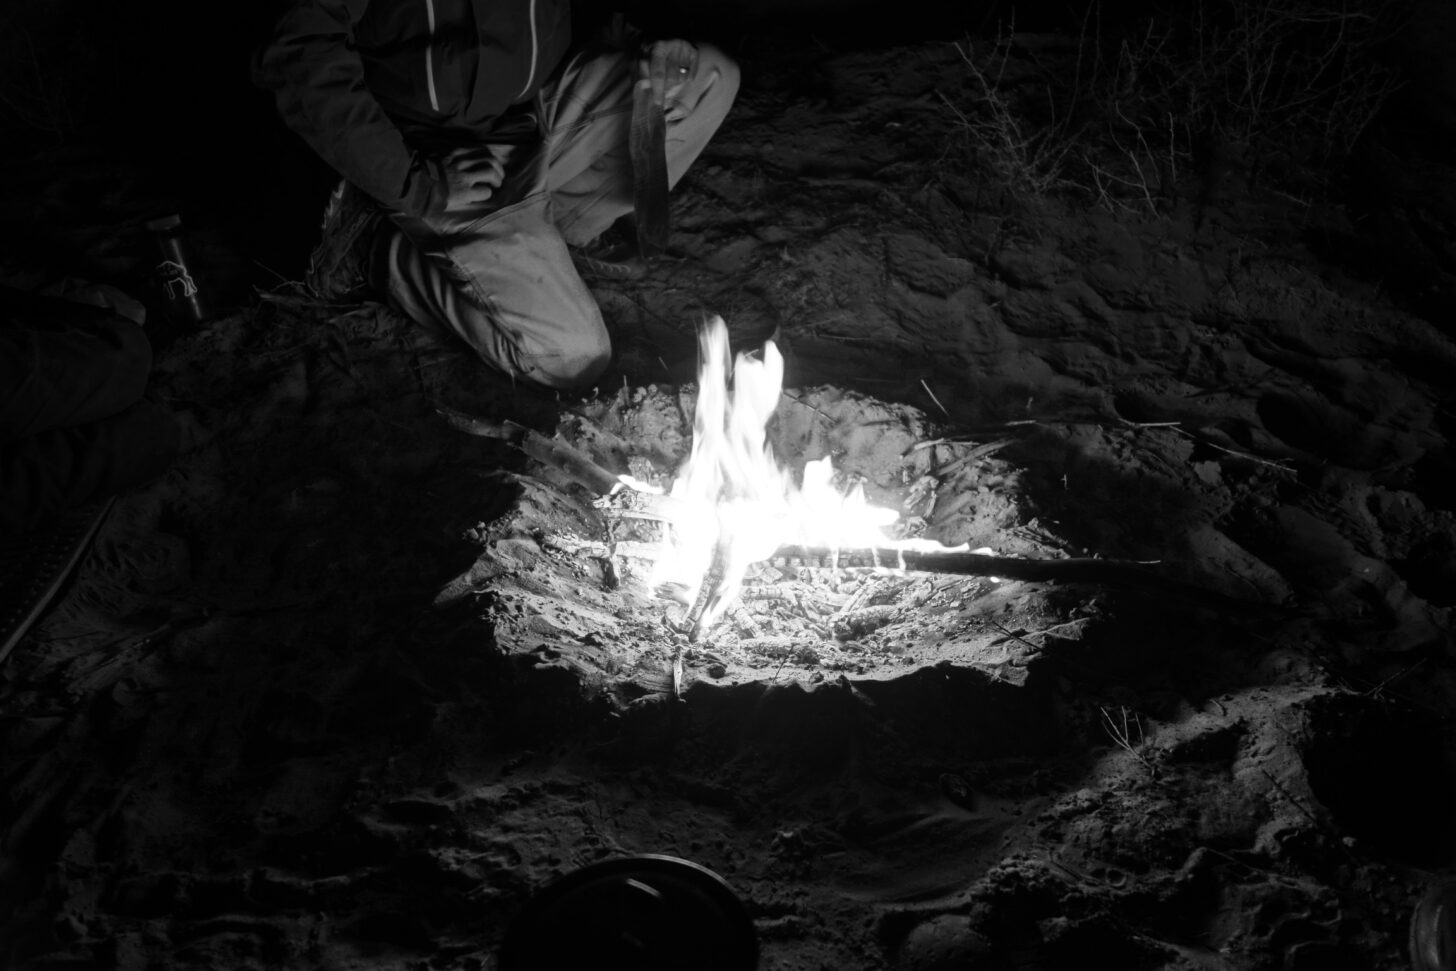 a black and white photo, taken at night. The photo is mostly dark, but the light from the fire is just enough to illuminate a man's knees. The man is kneeling next to the fire.